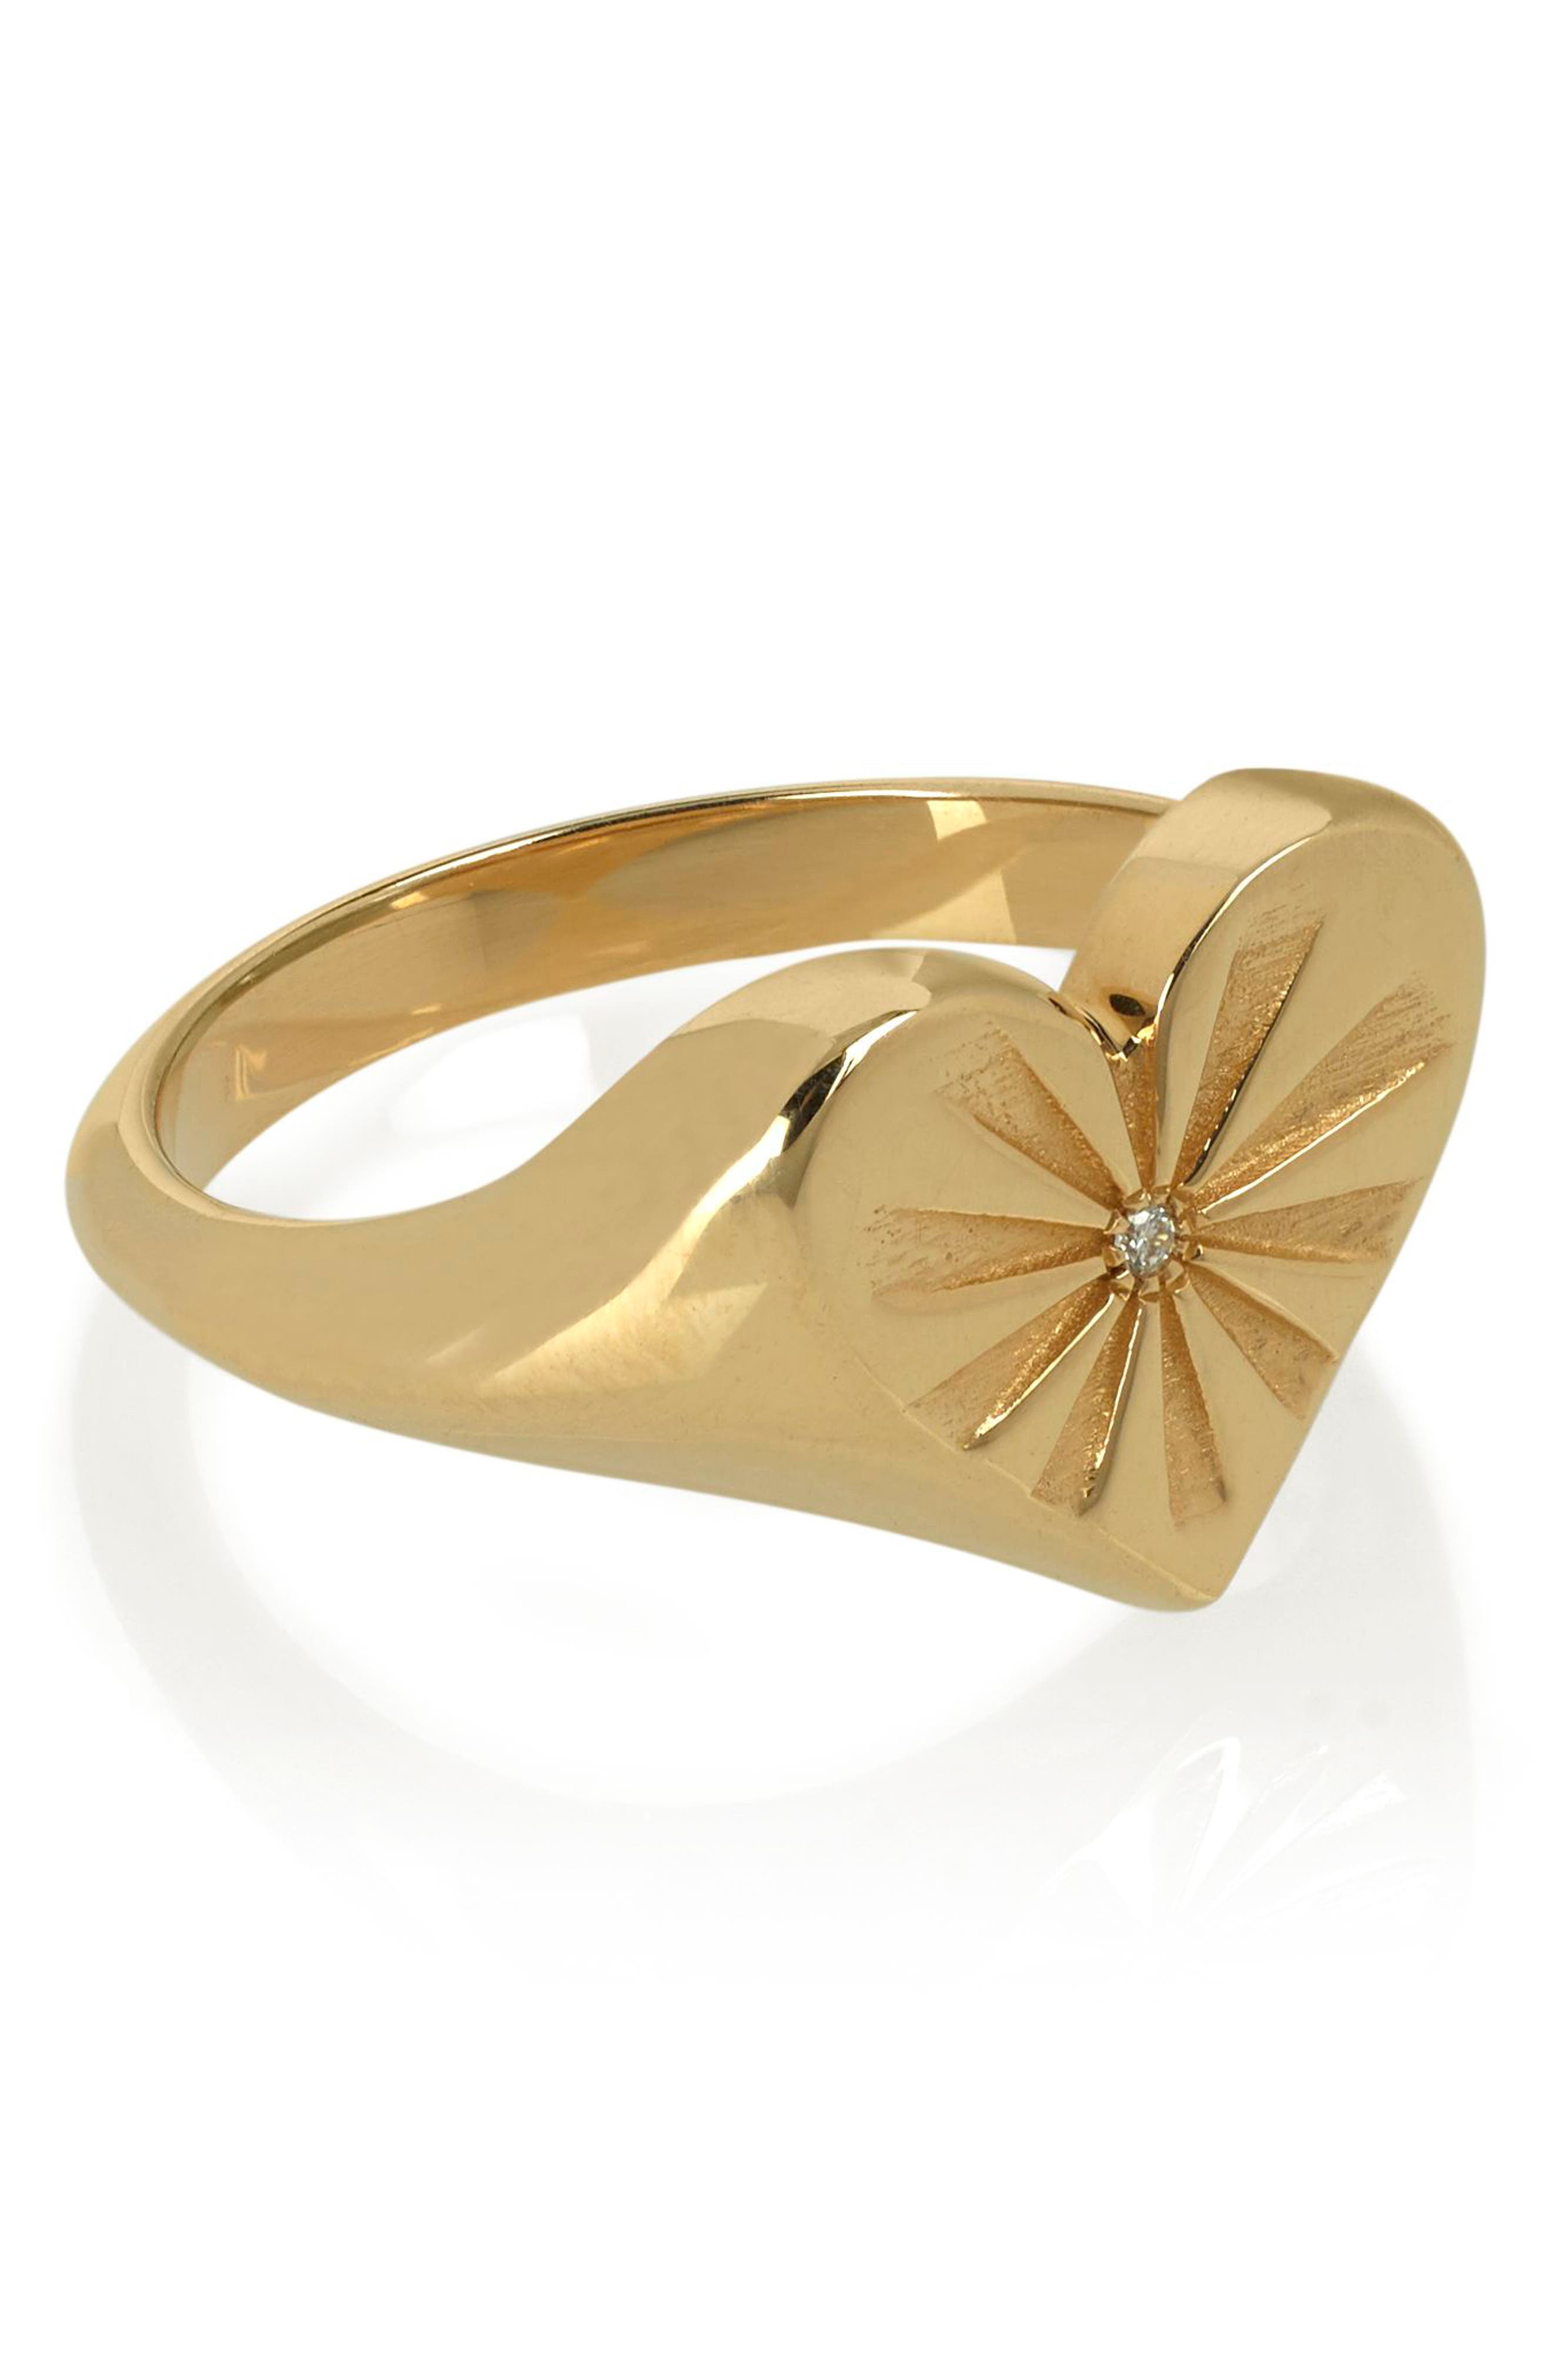 Heart Pinky Ring,                             Alternate thumbnail 2, color,                             Yellow Gold